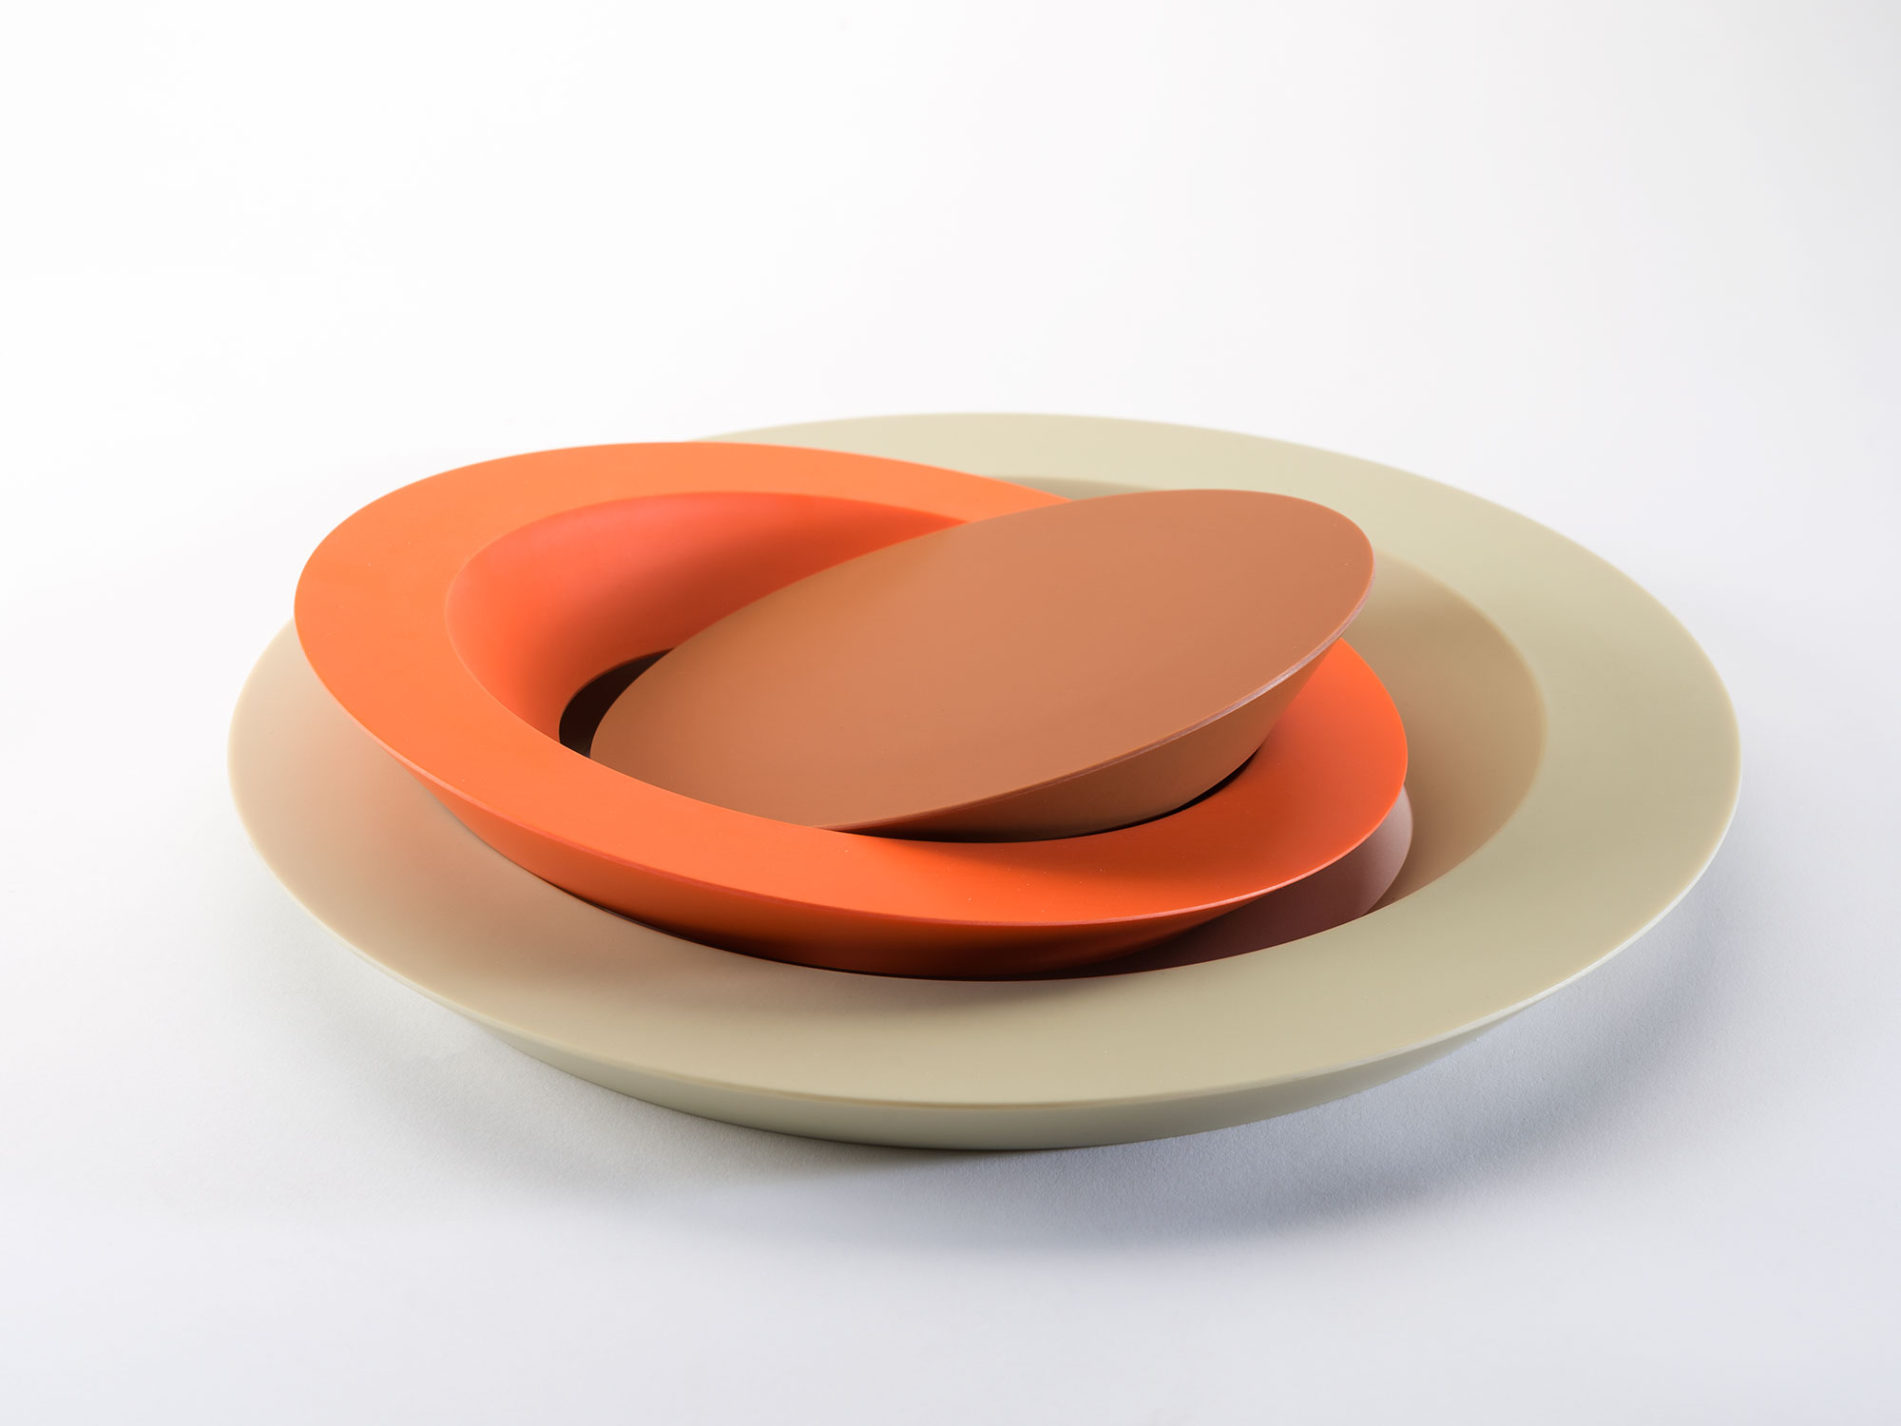 Disassembled cake plate made of three concentric circles: outer ring in off-white, second ring in orange, and center circle in brown.